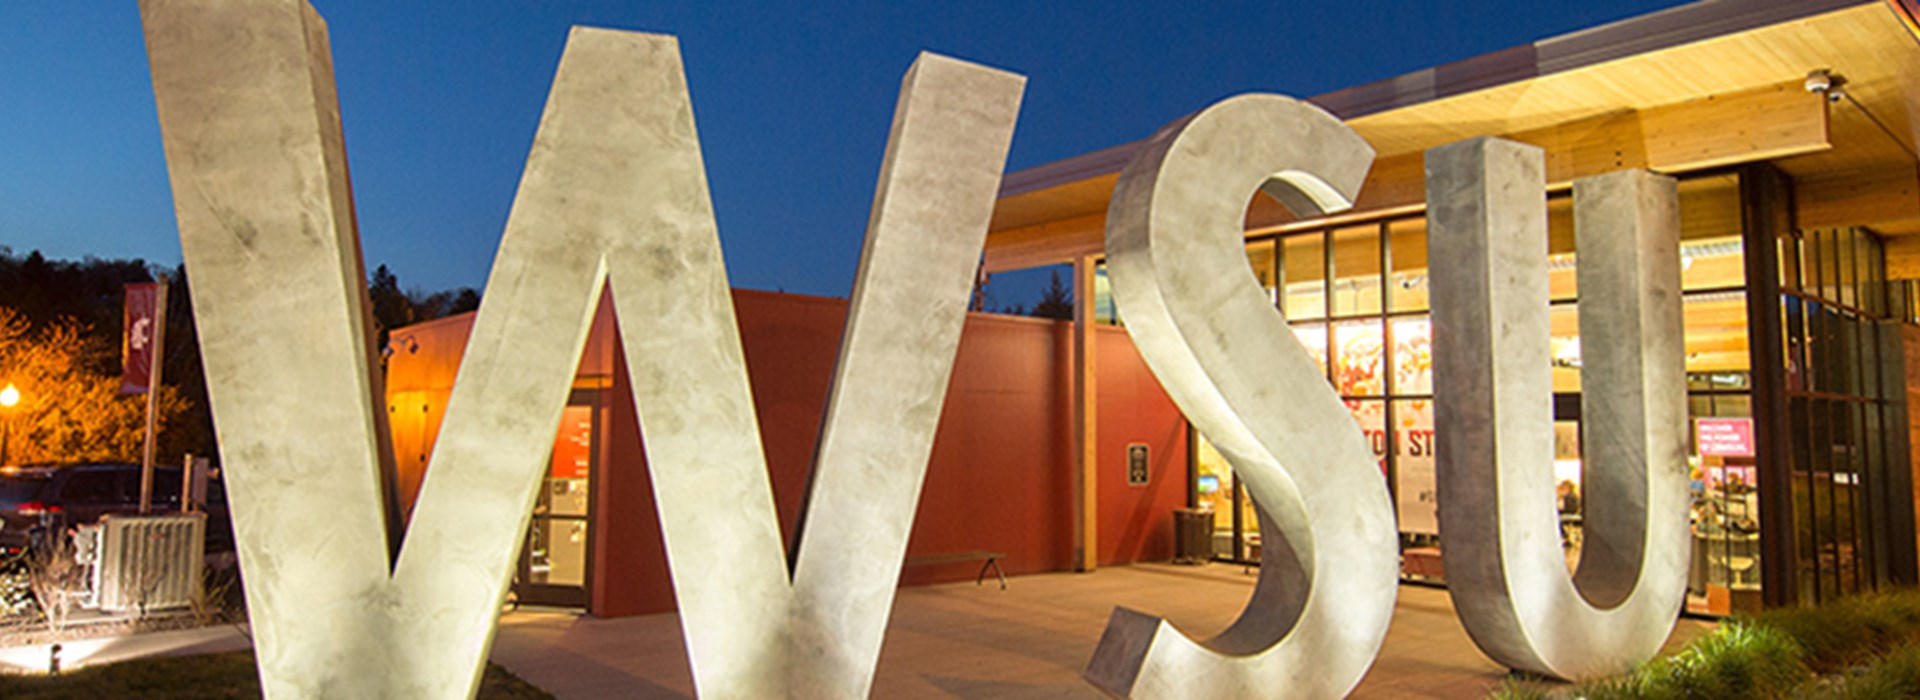 Exterior of Brelsford visitor center focused on the concrete letters that spell WSU